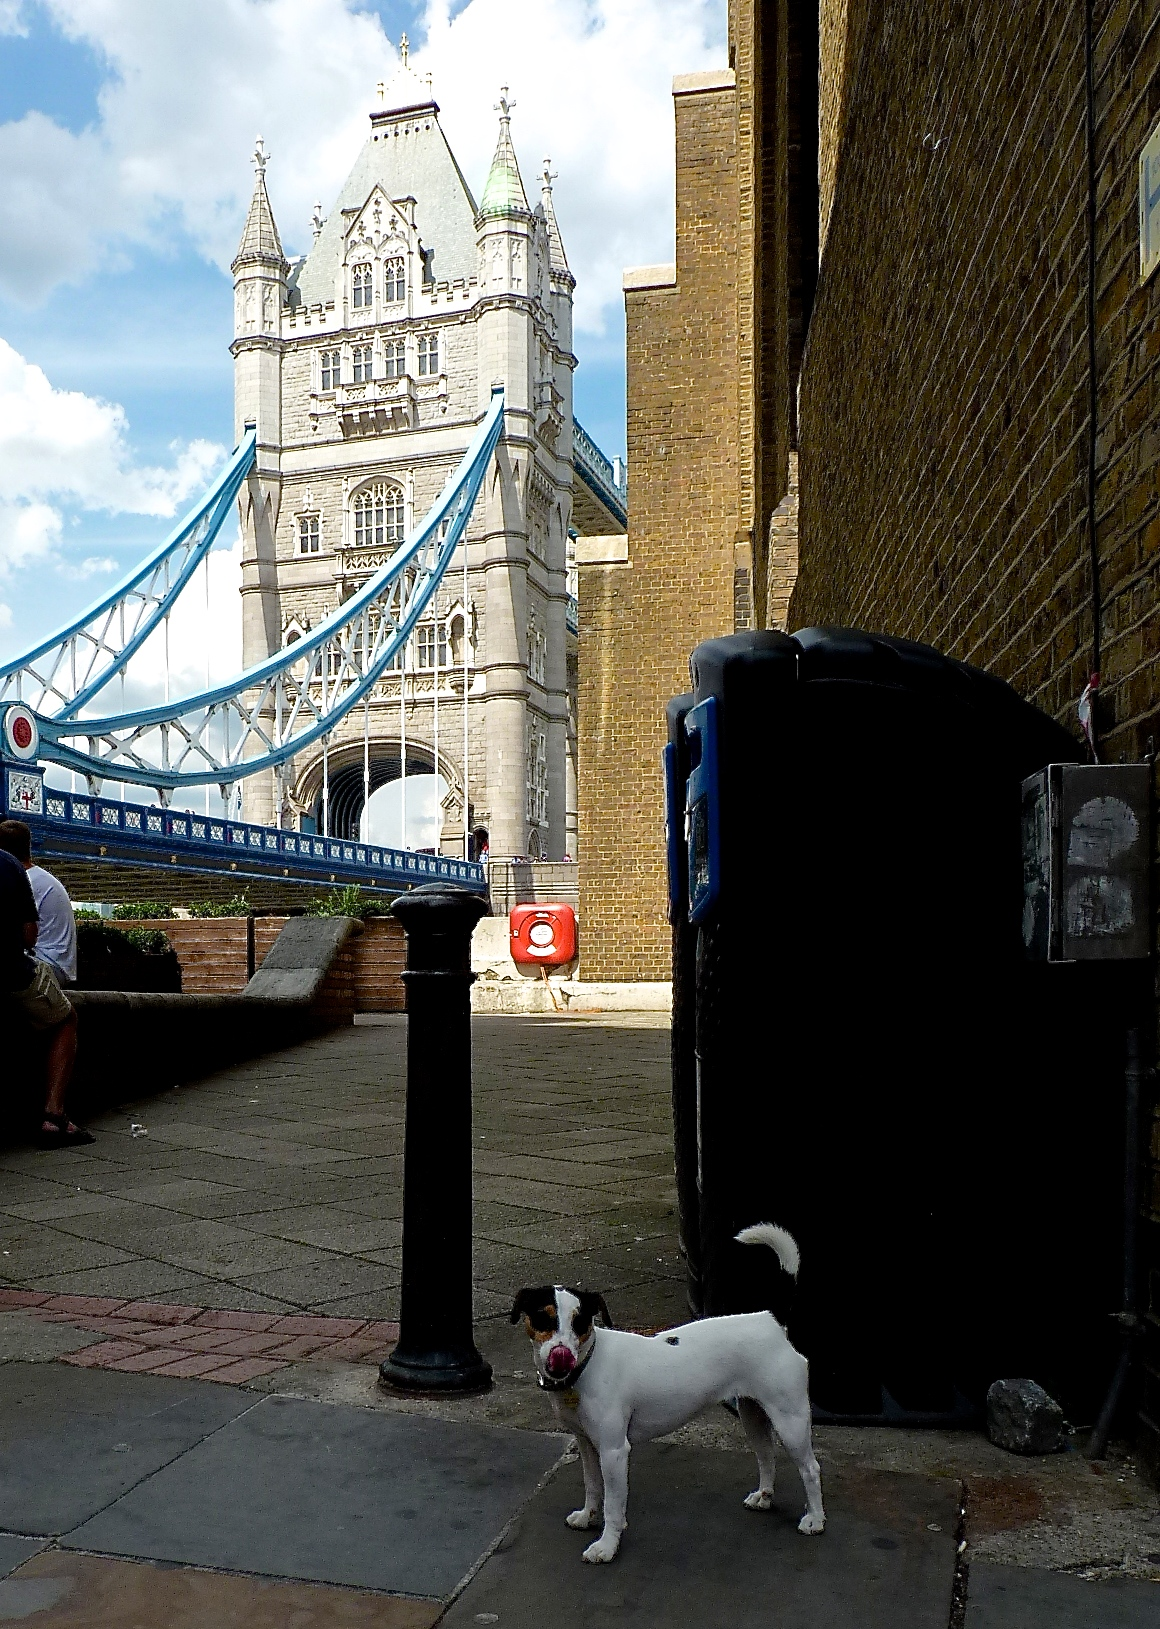 This is a very famous spot in London. It's famous because I've been there. I think.